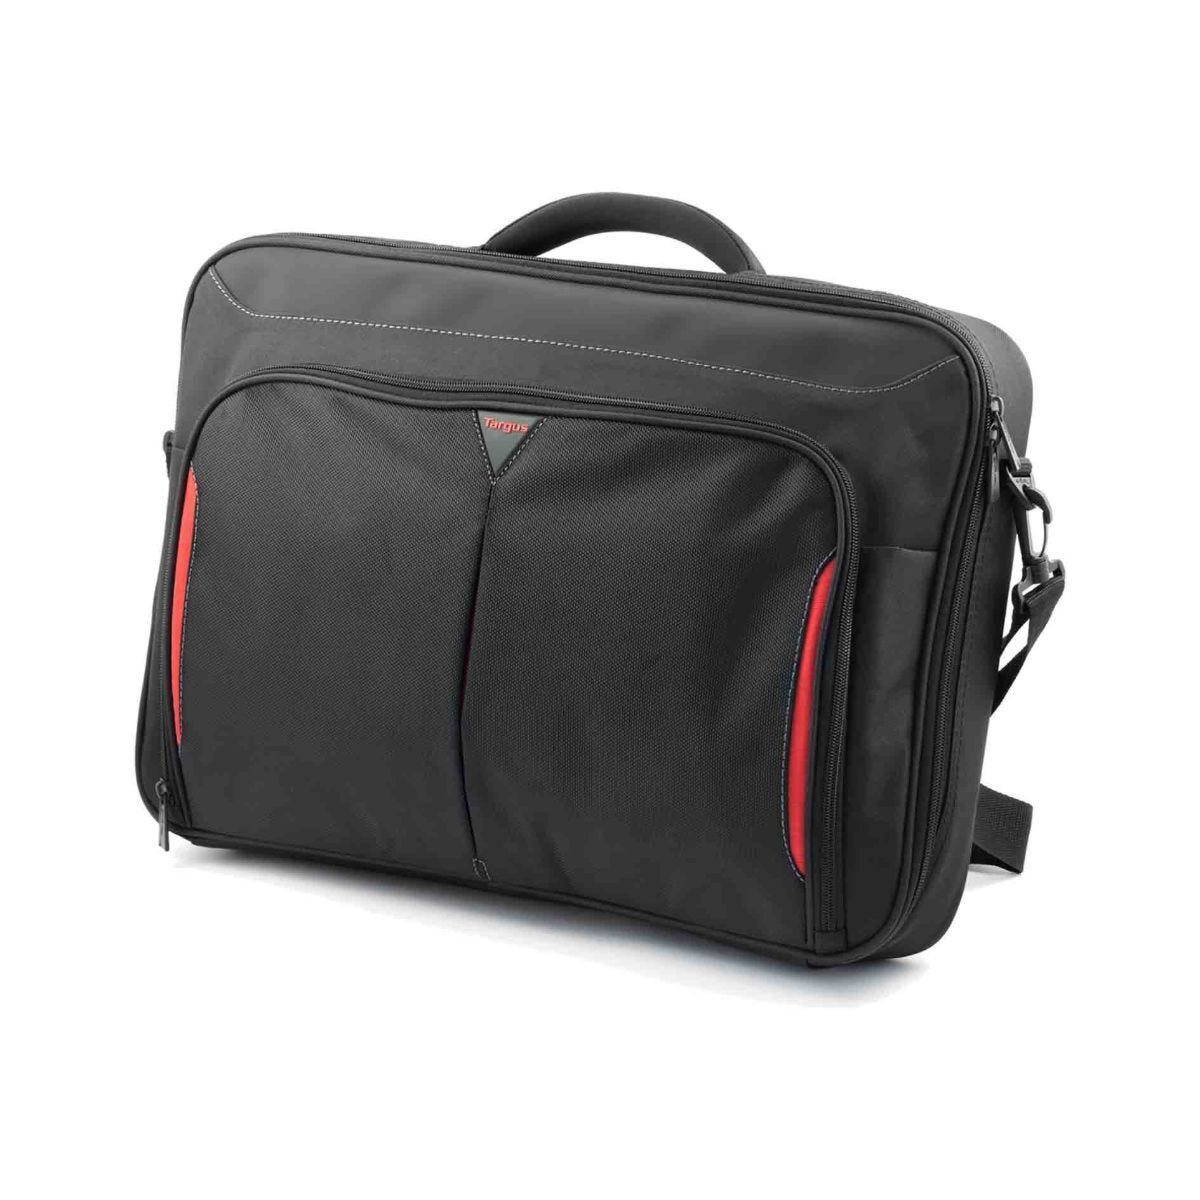 Targus Classic Plus Clamshell Laptop Bag 17-18 Inch